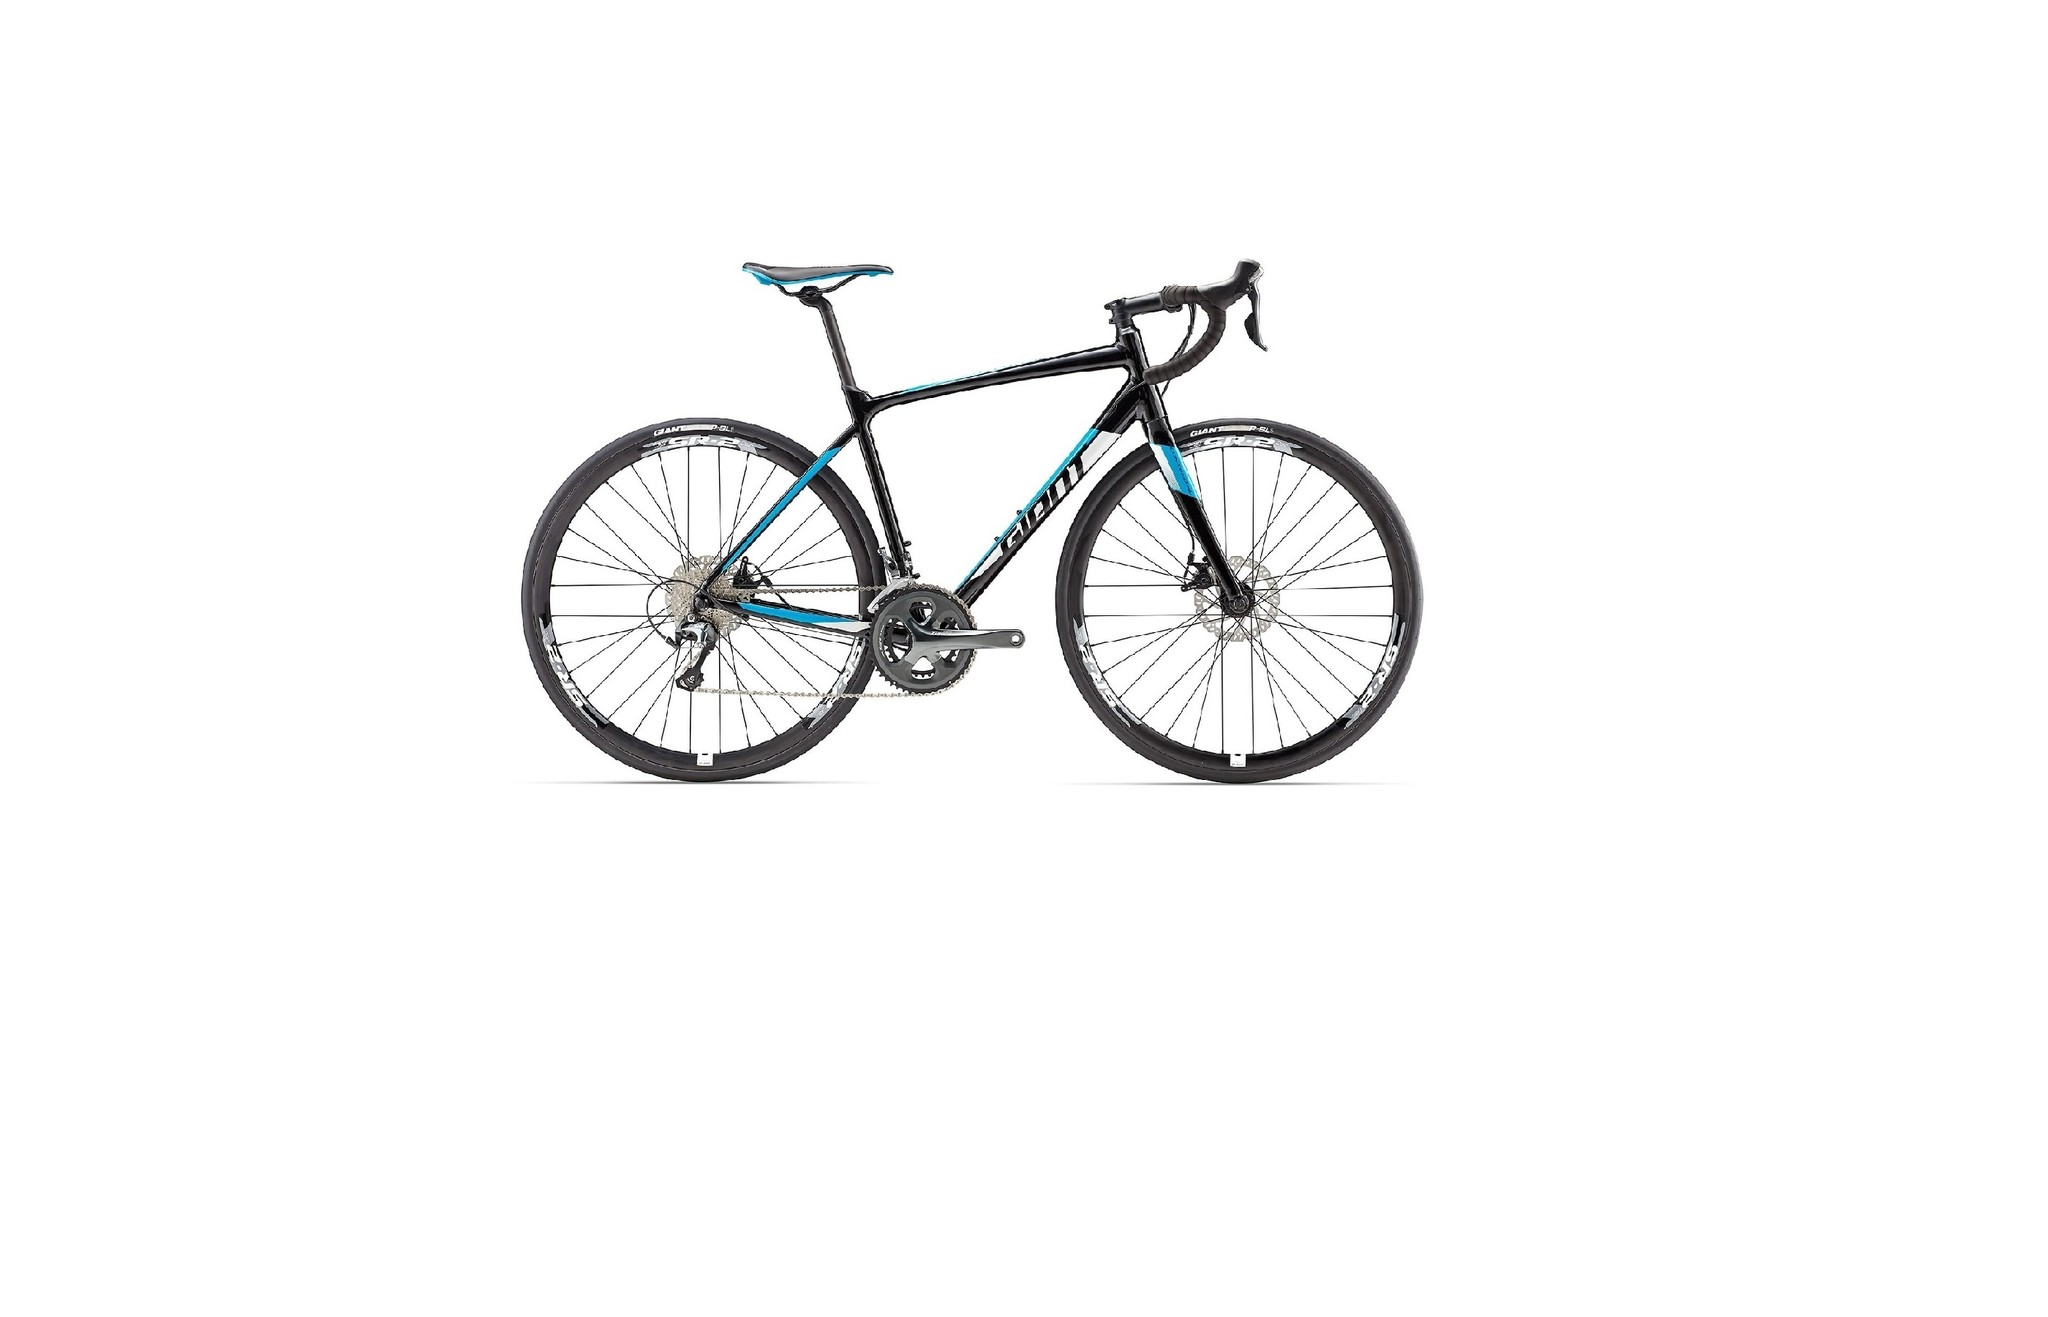 Giant Contend SL 2 Disc - Small - LAST ONE